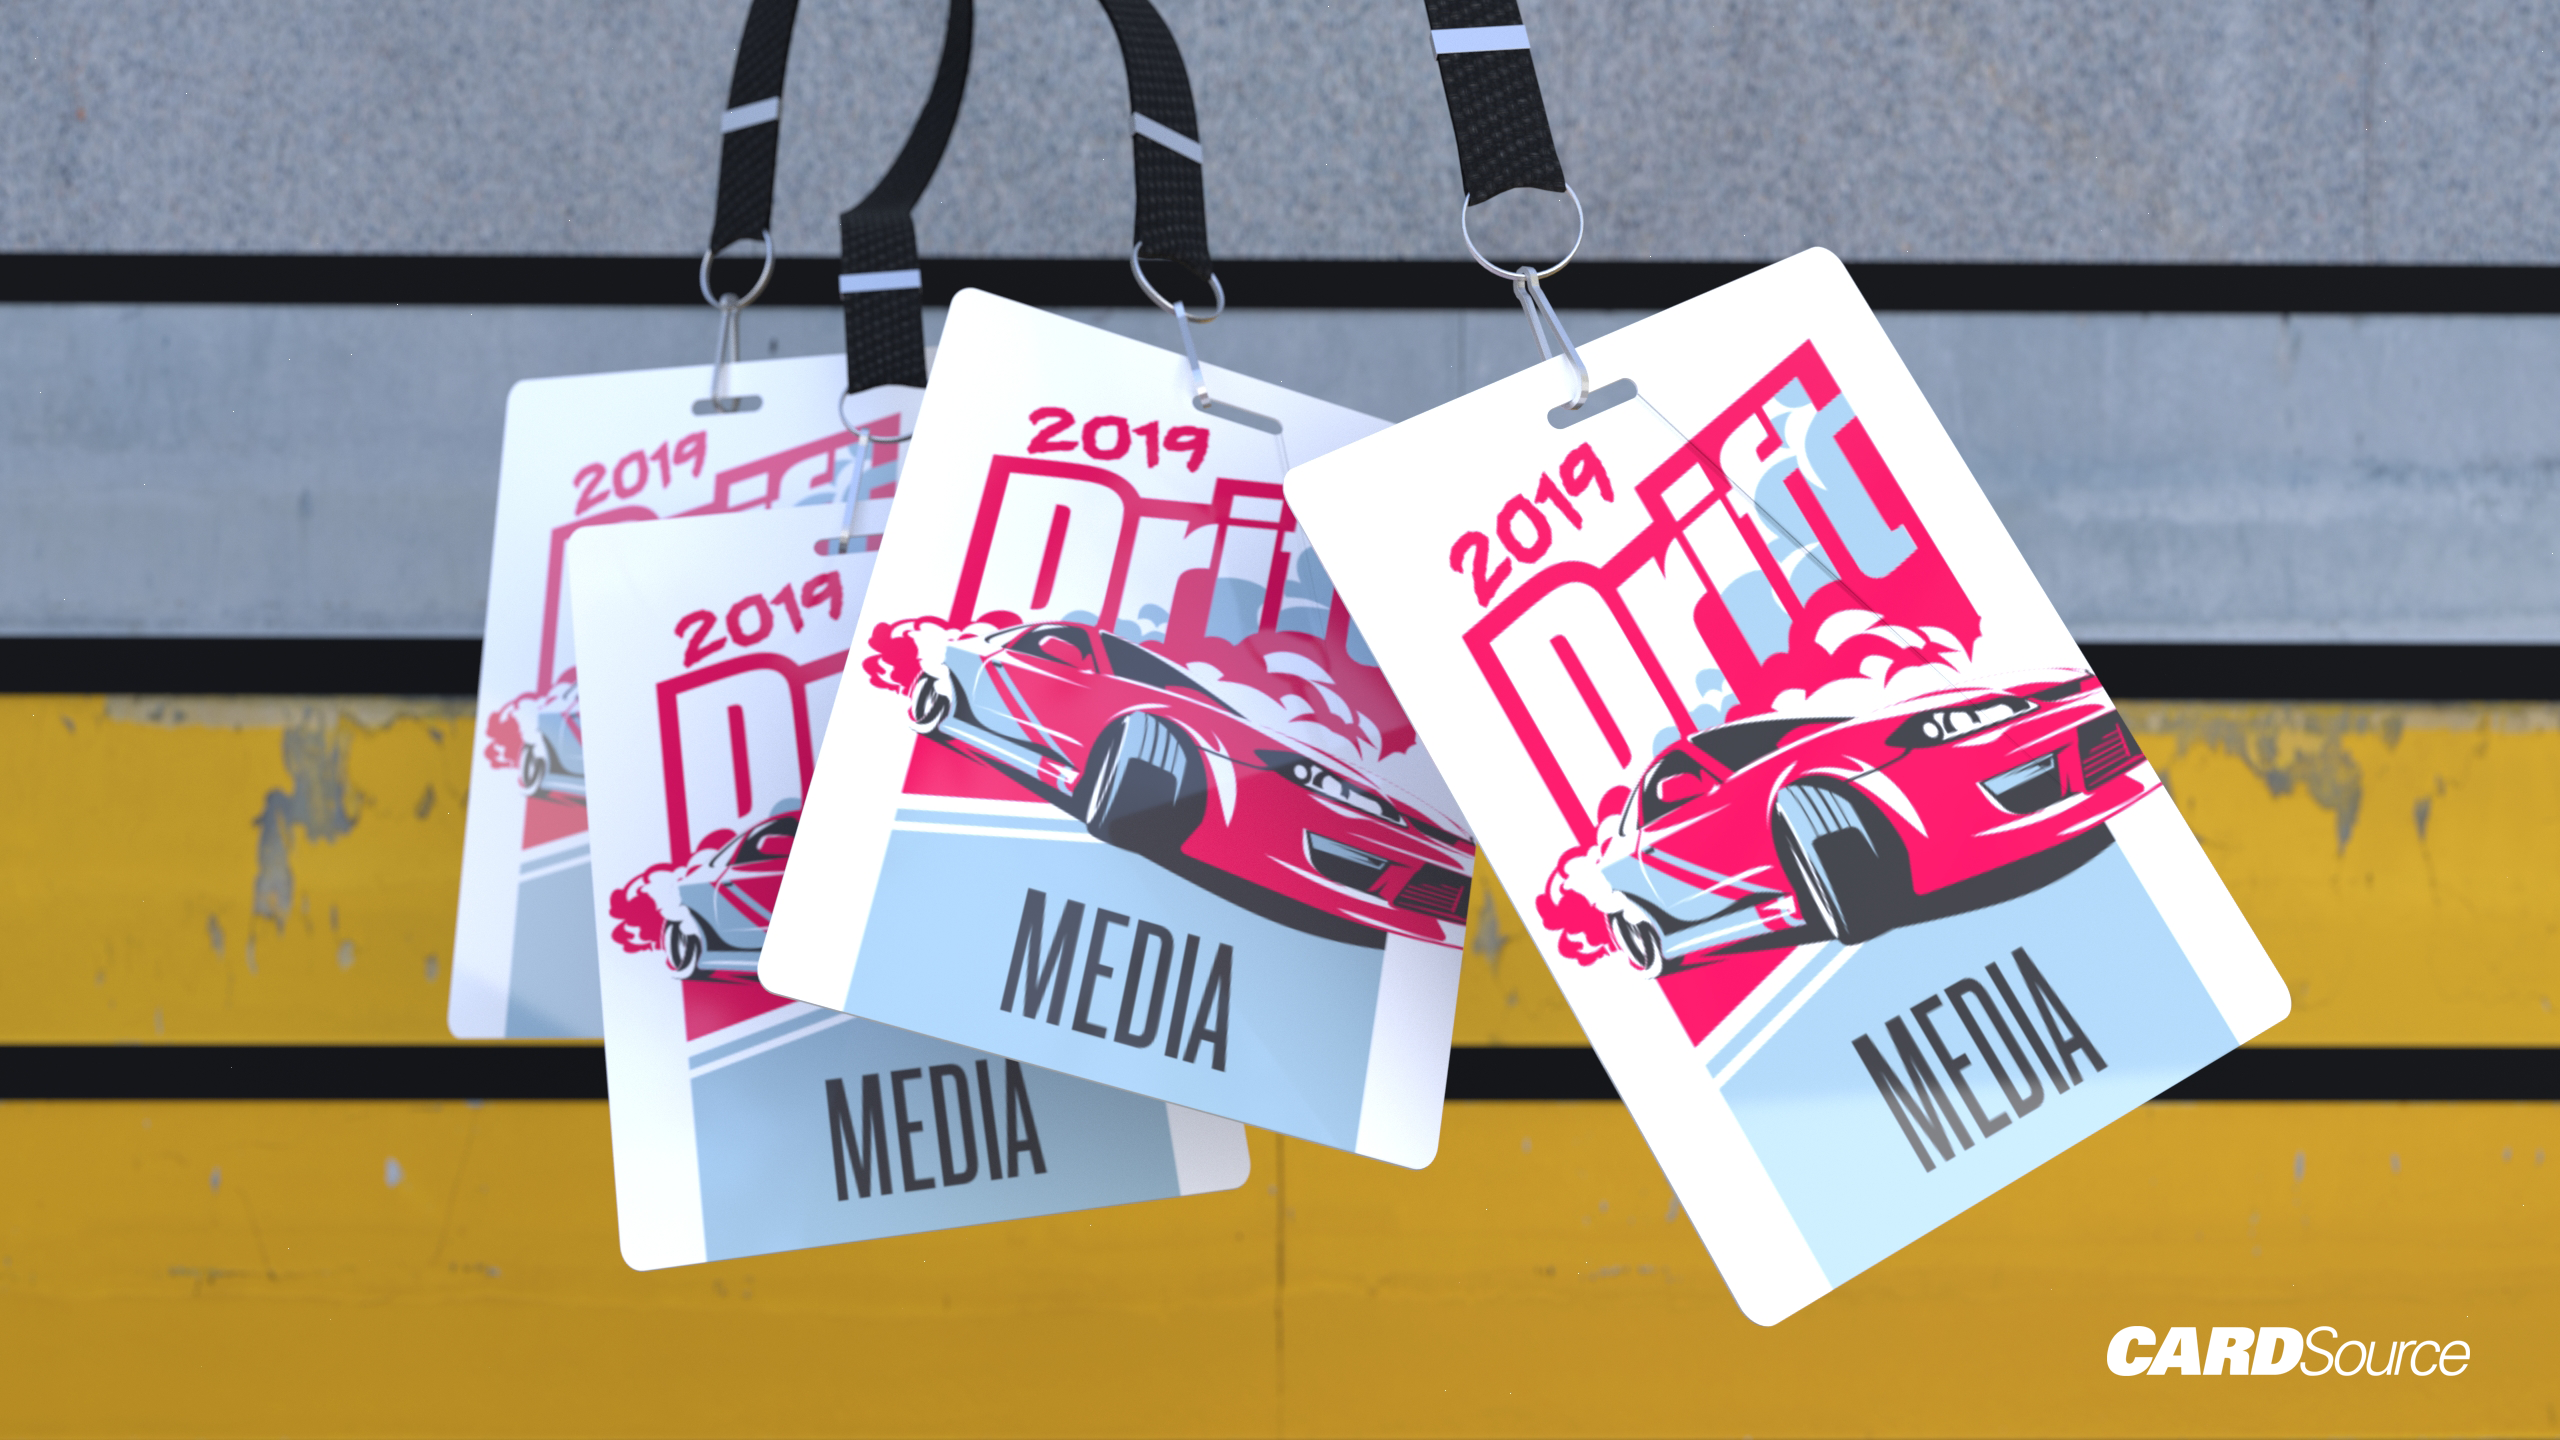 drift media event pass